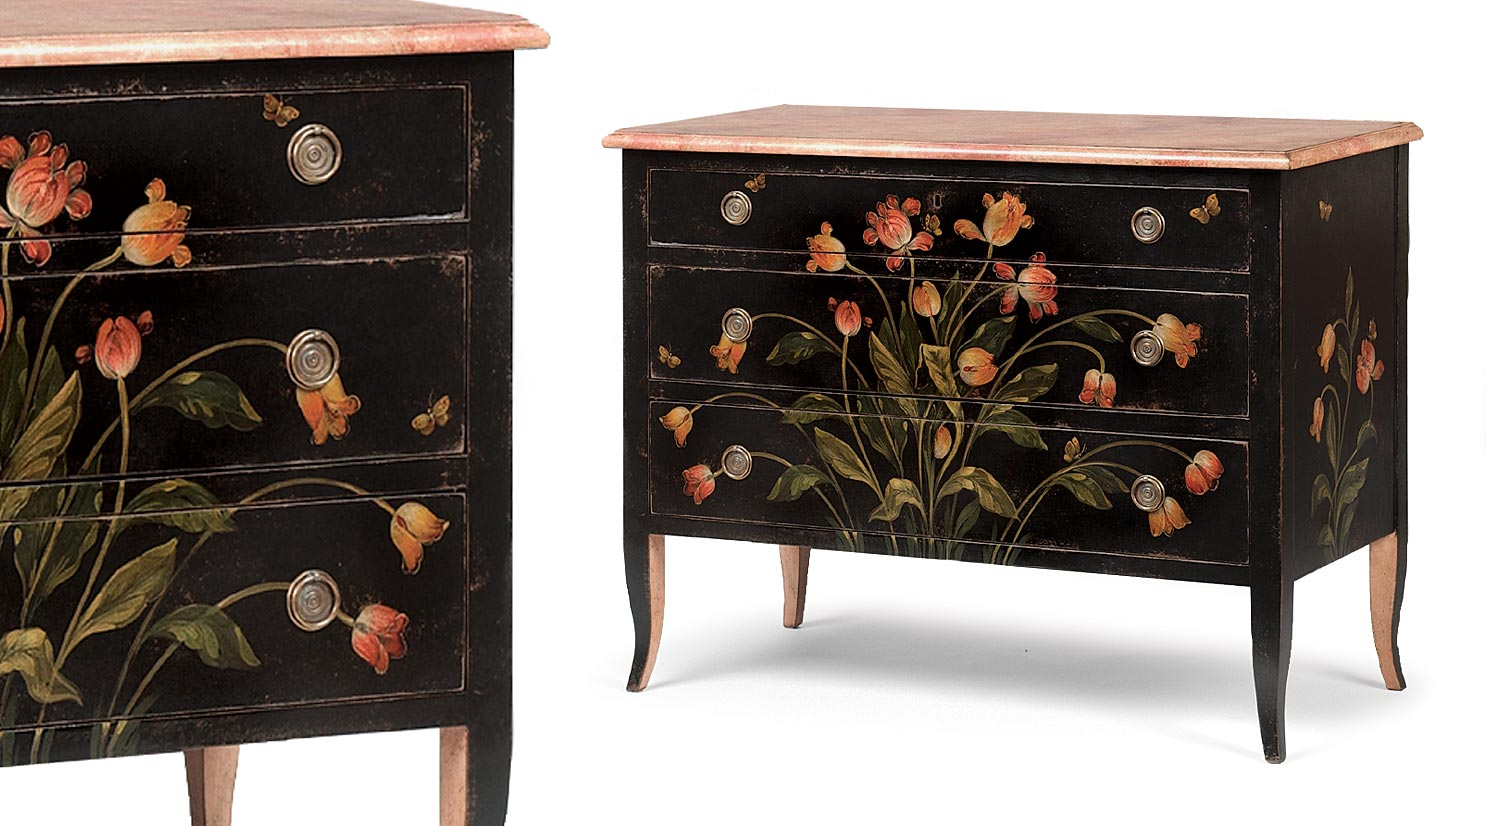 Patina Furniture Chests Firenze Chest